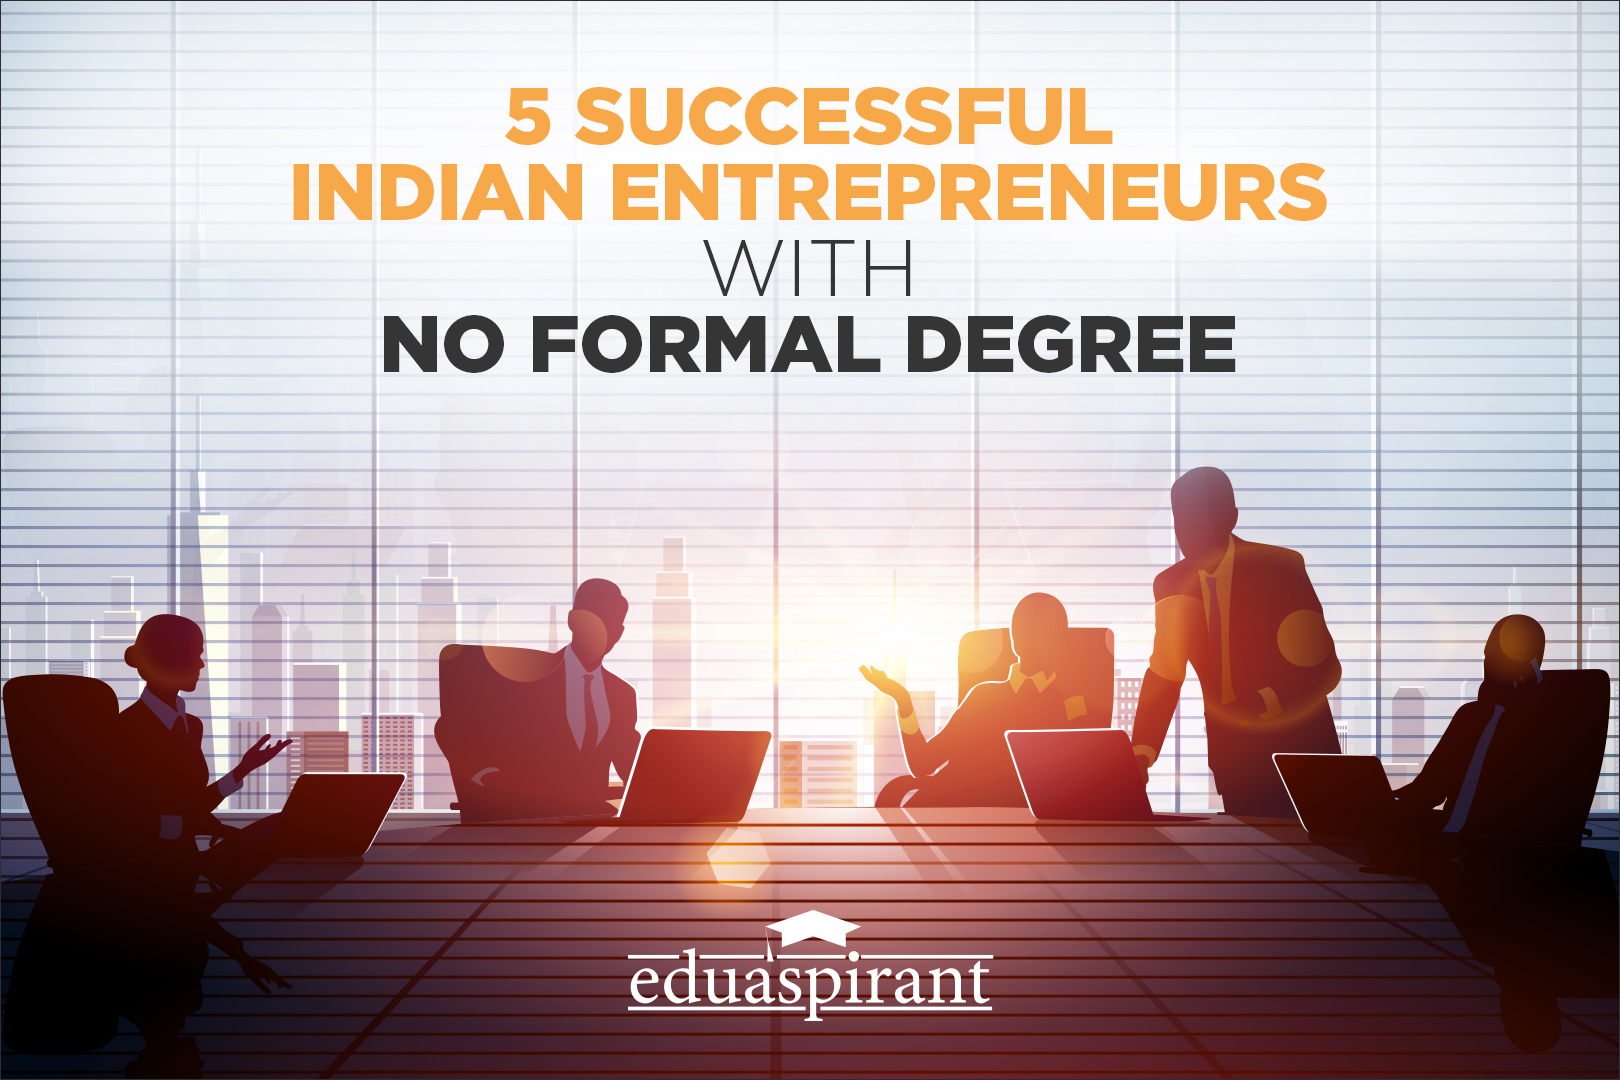 5 Successful Indian Entrepreneurs who have made it big without a degree